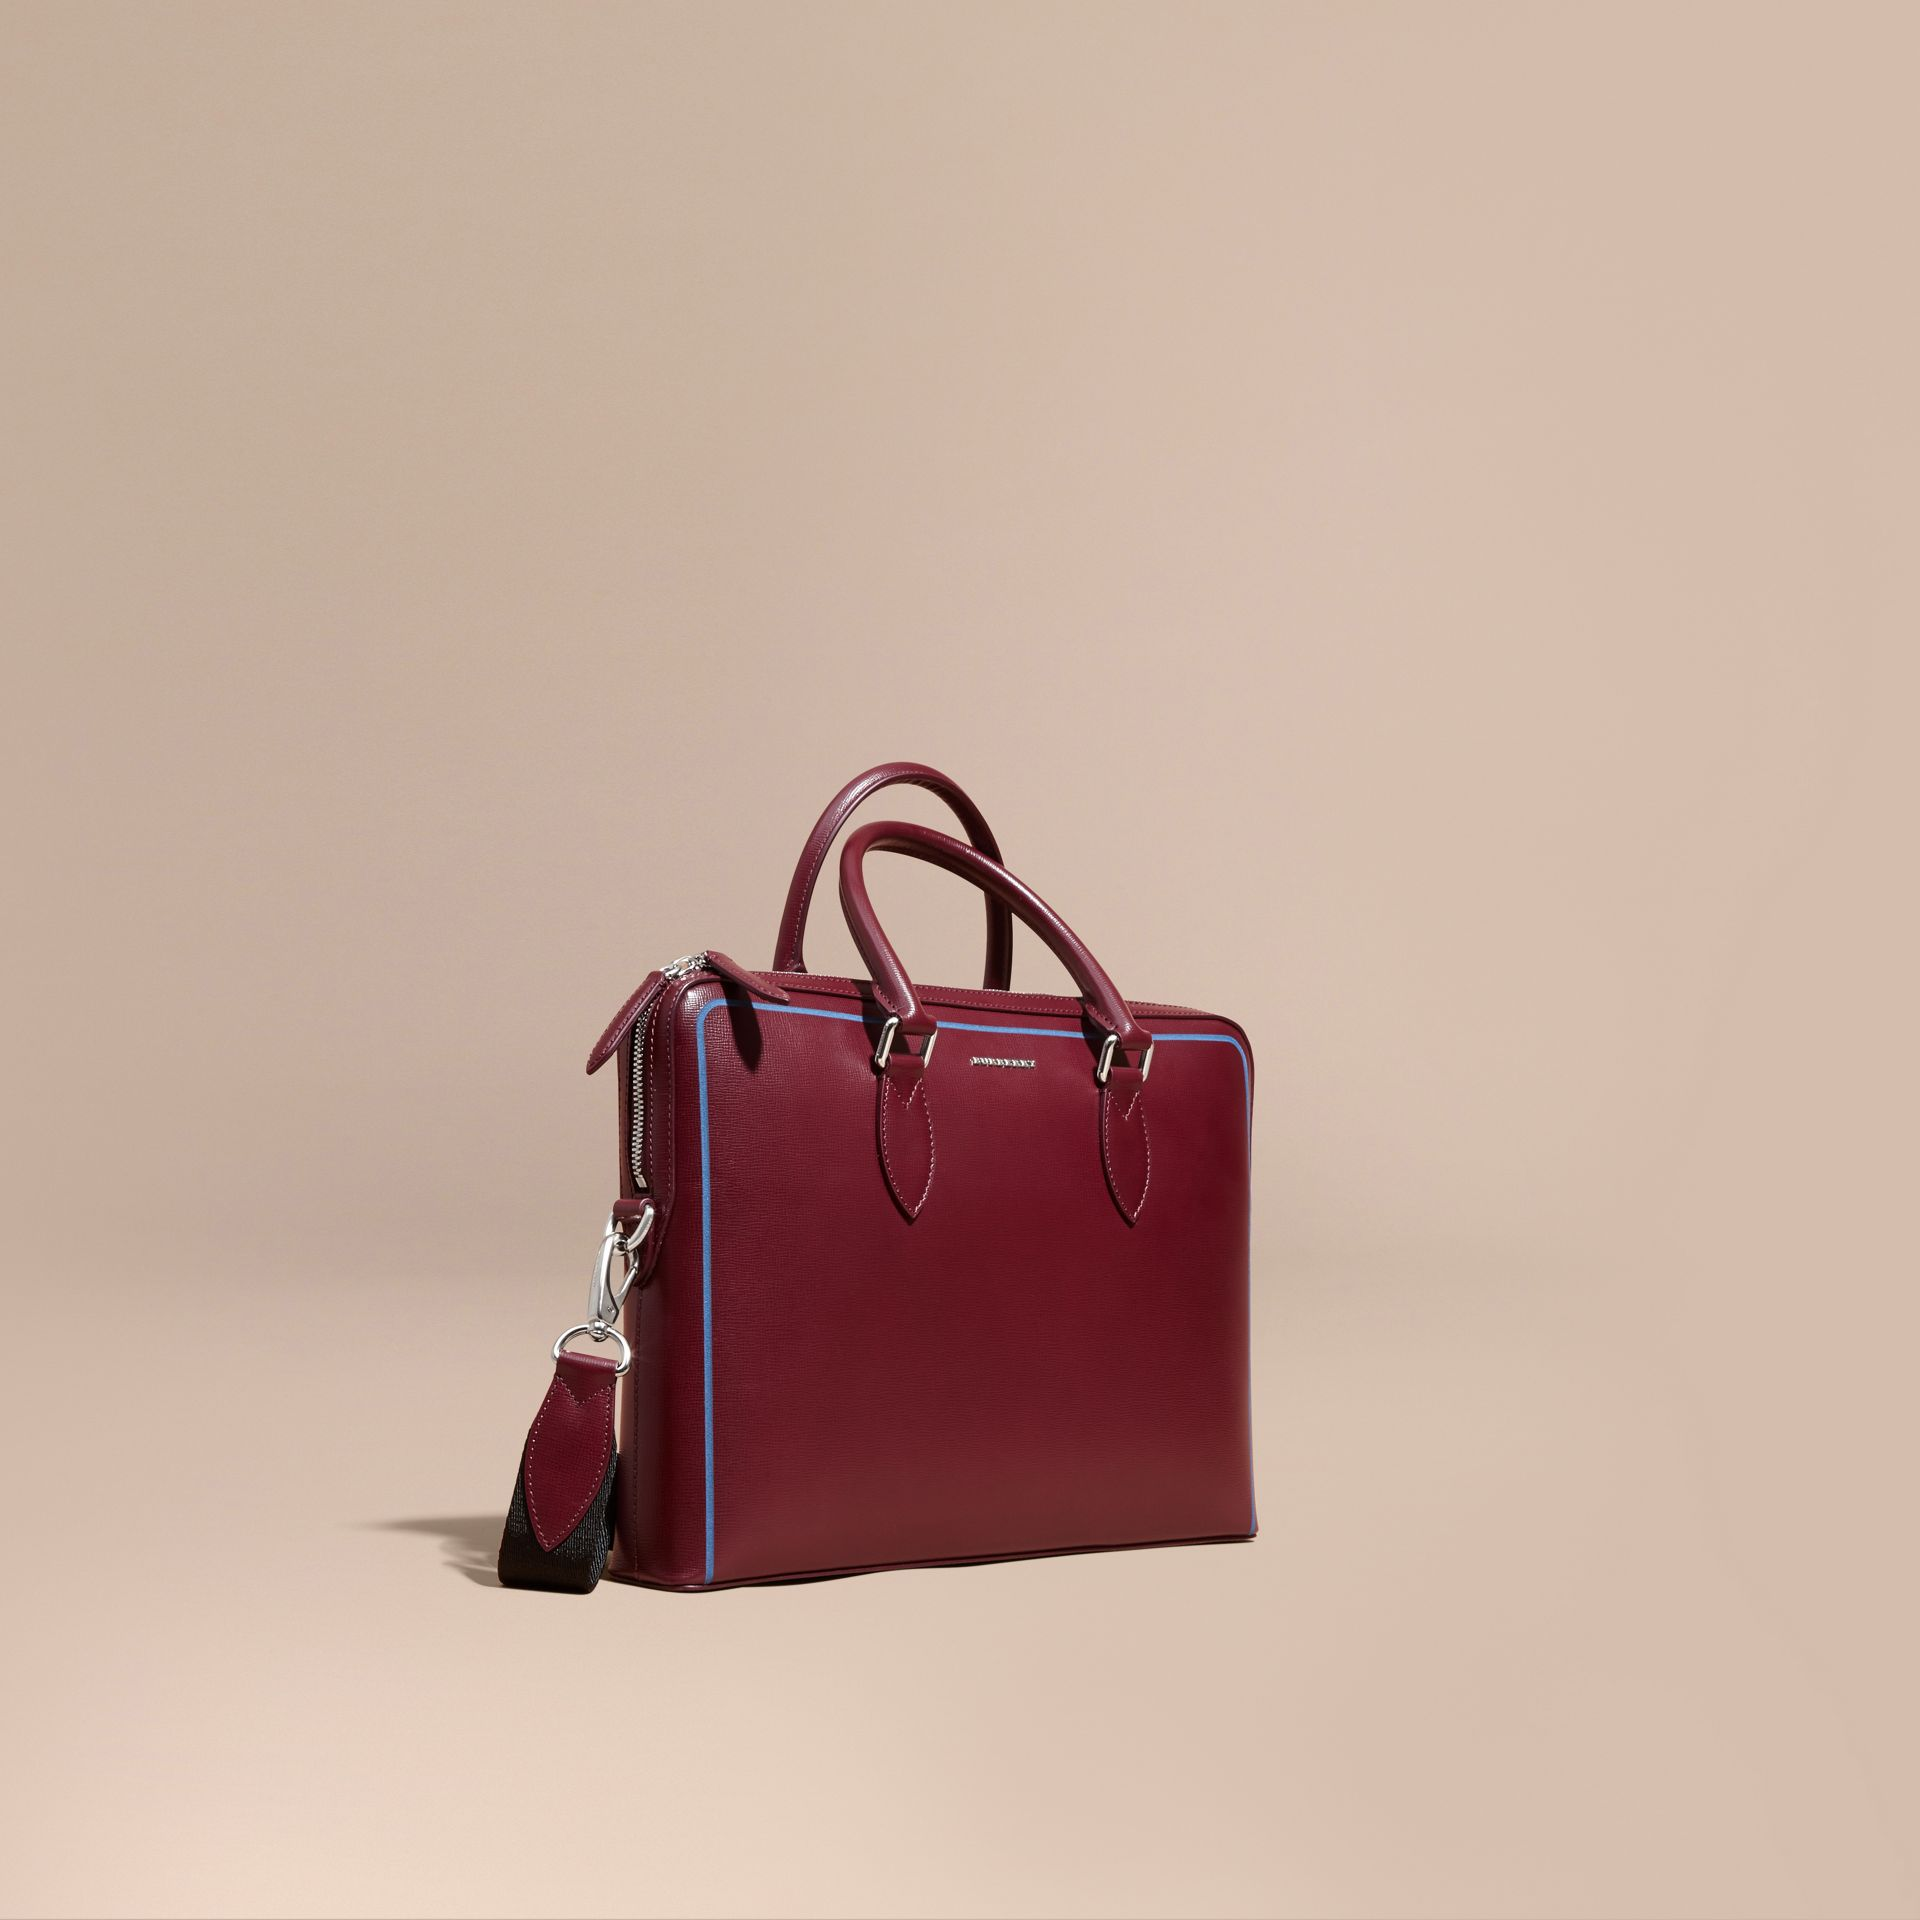 The Slim Barrow Bag in London Leather with Border Detail Burgundy Red - gallery image 1